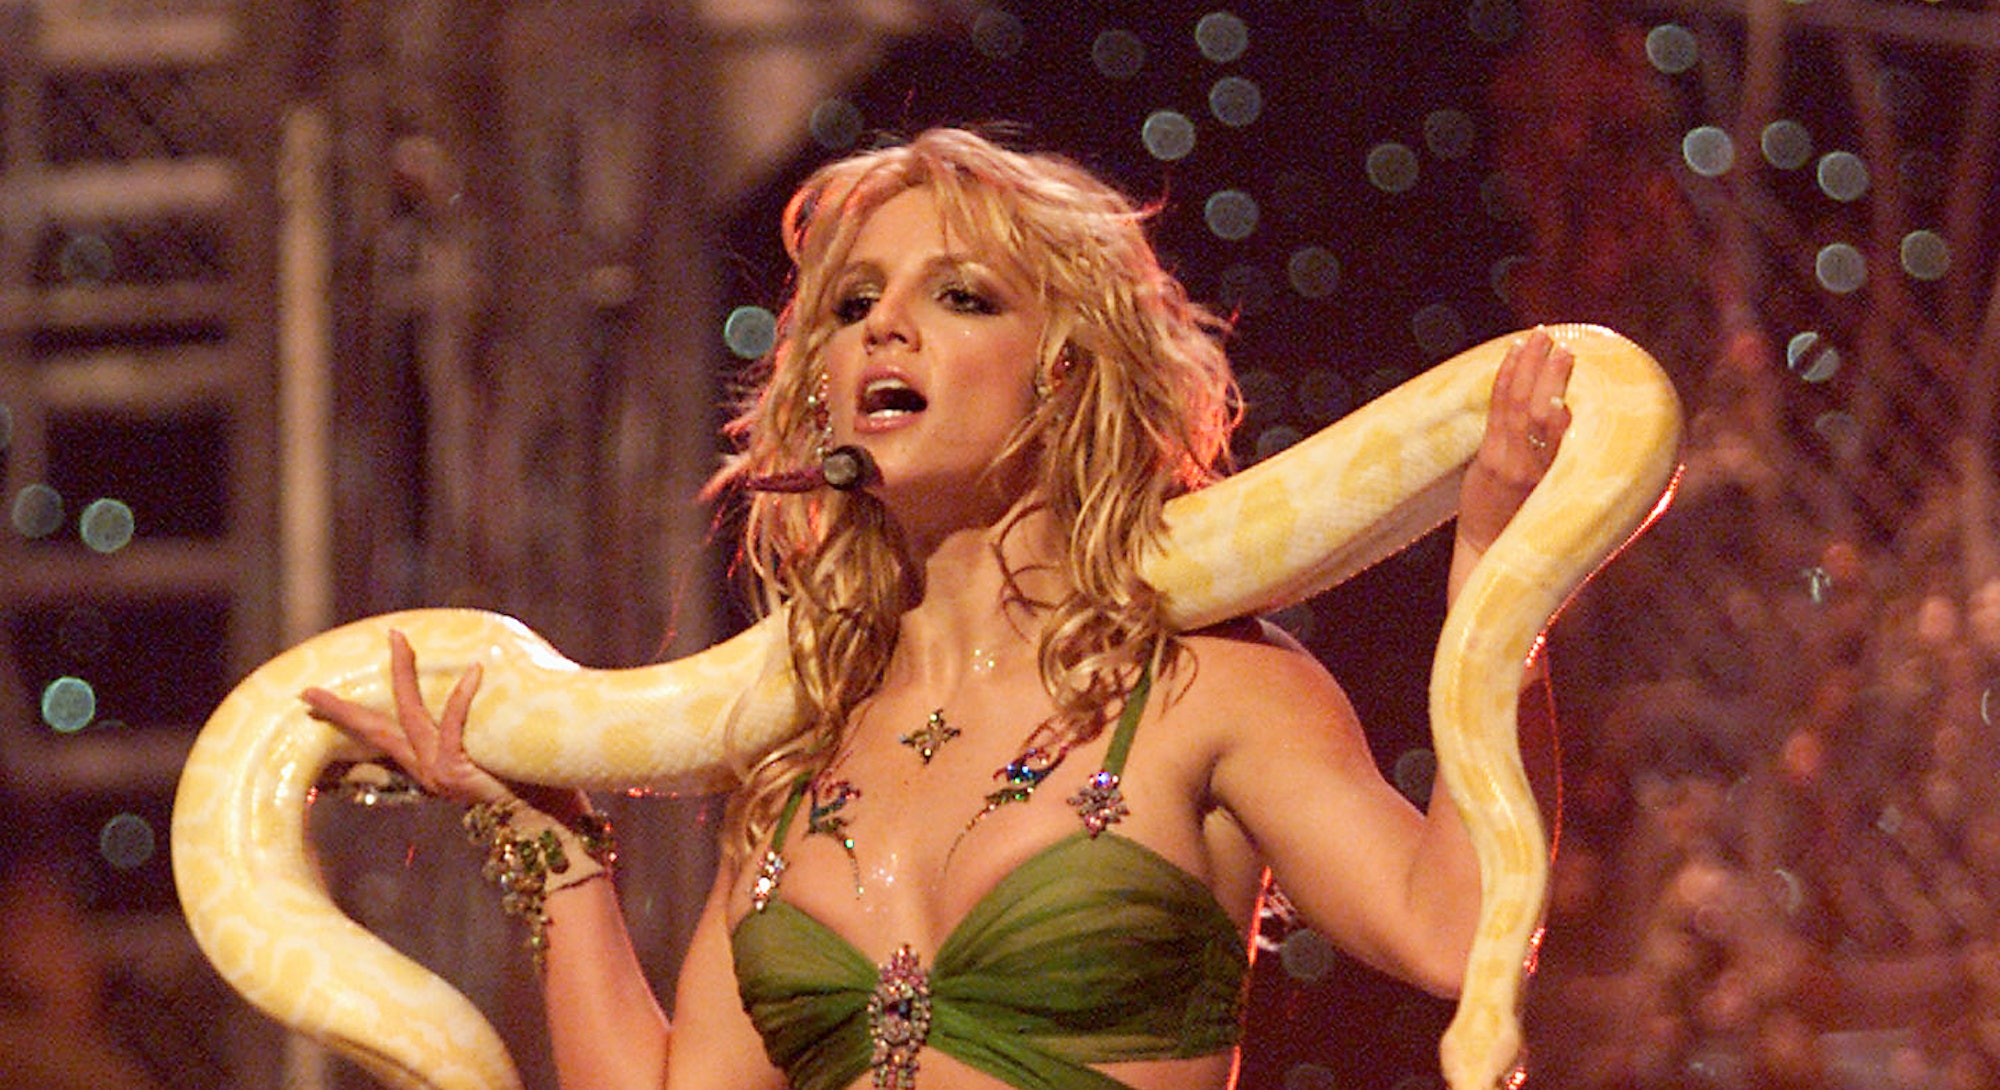 Britney Spears performs at the 2001 MTV VMAs.